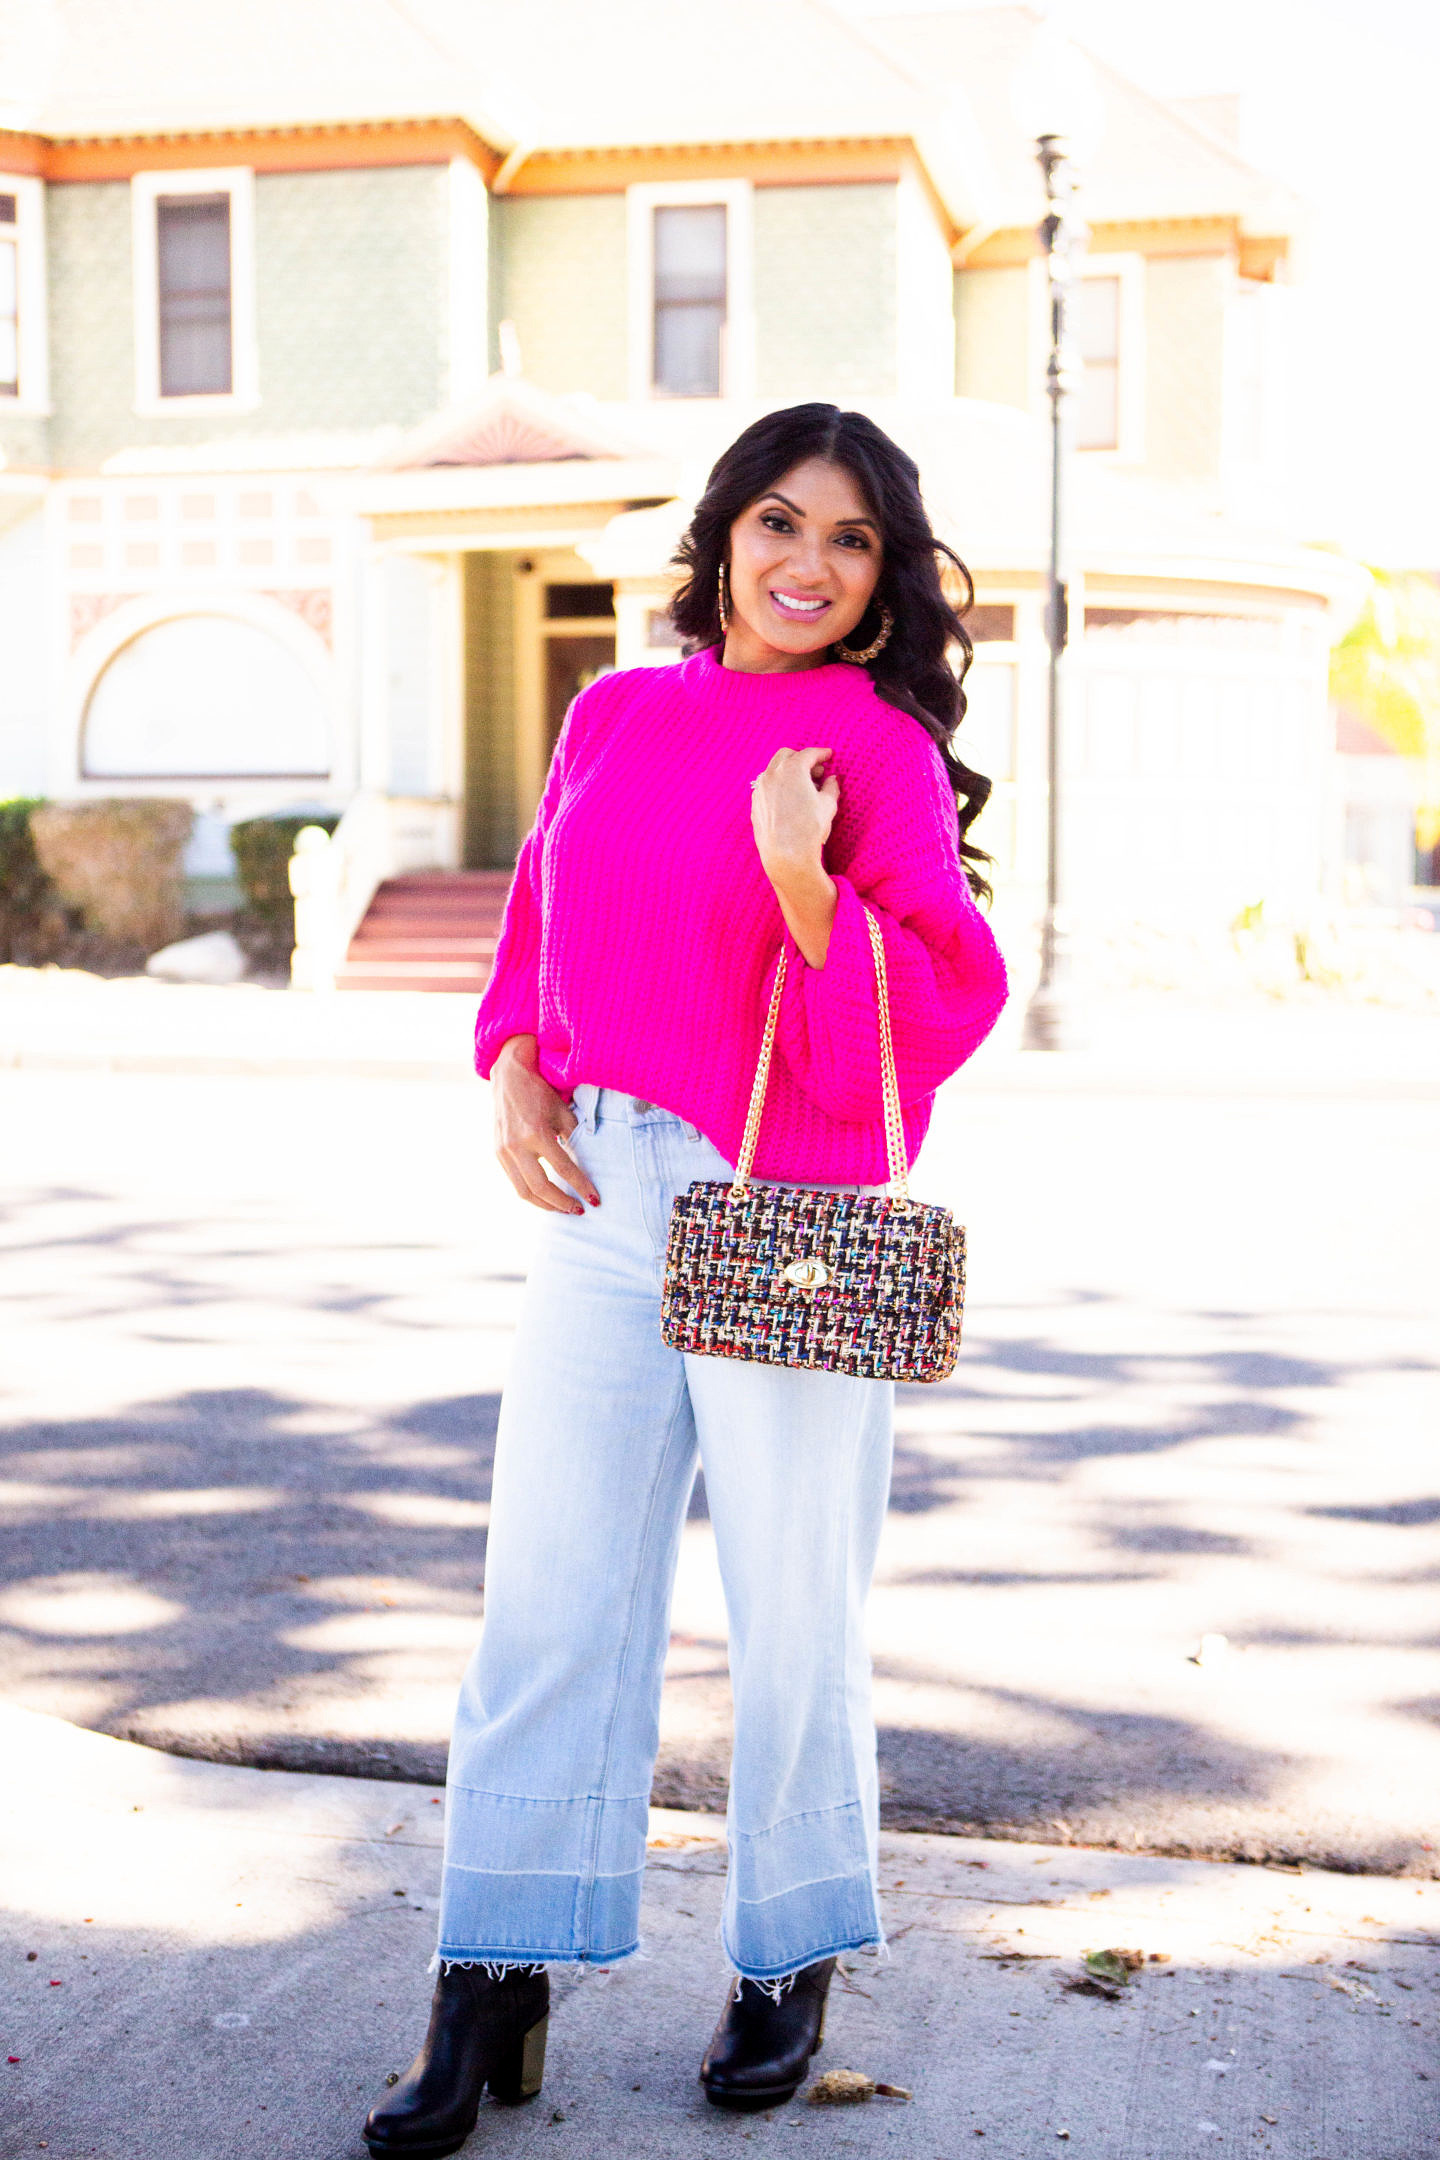 Bookmark this post ASAP if you have been looking to add a pop of color to your fall/winter wardrobe? Orange County Blogger Debbie Savage is sharing why you need to add a hot pink sweater to your wardrobe ASAP! See why here!